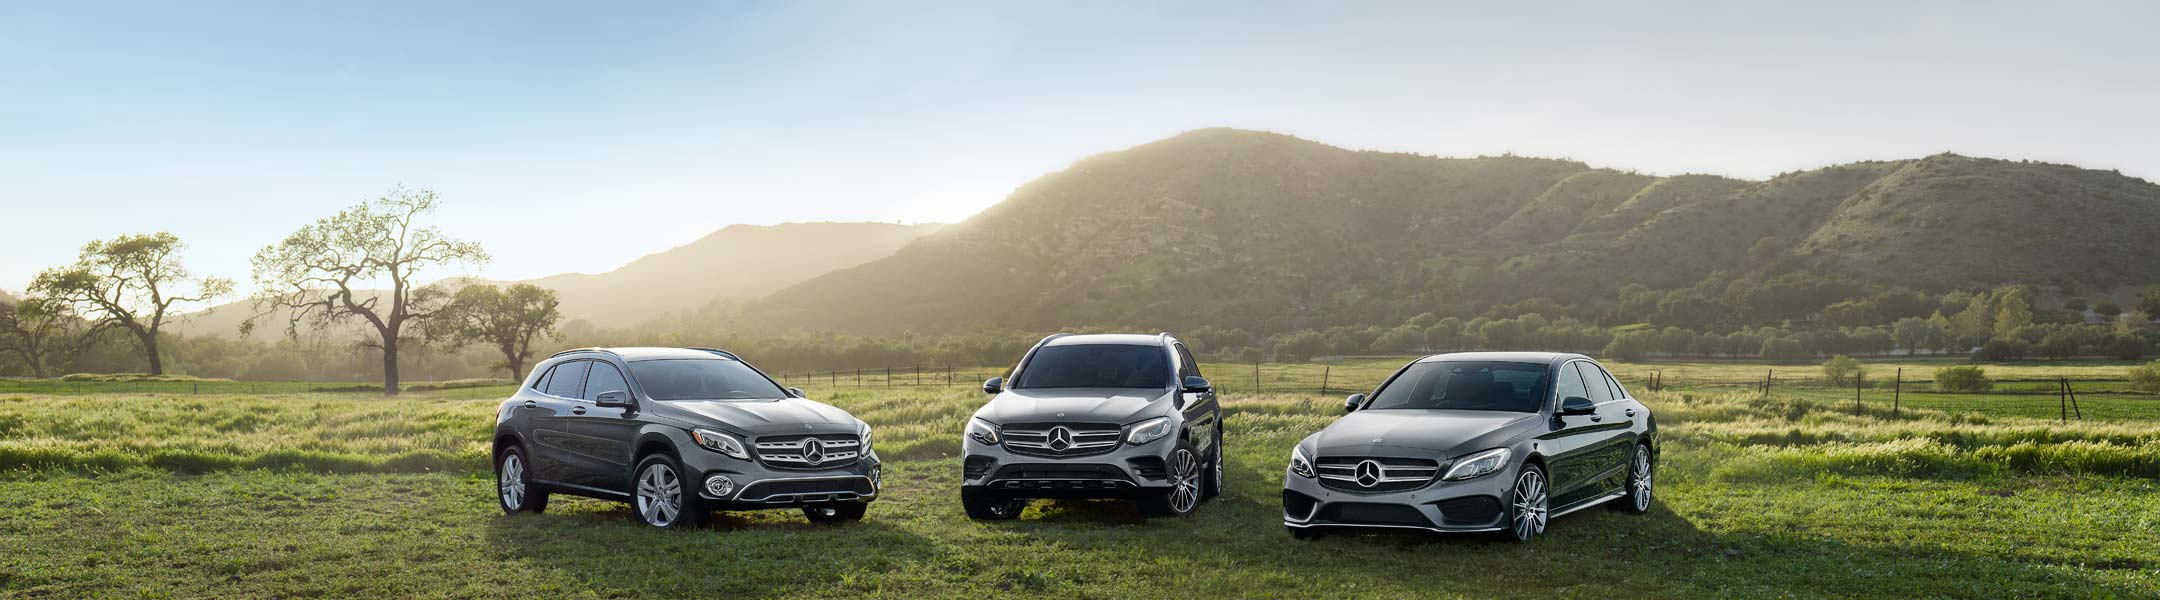 Three Mercedes-Benz vehicles are parked in a pasture on a summer's day.